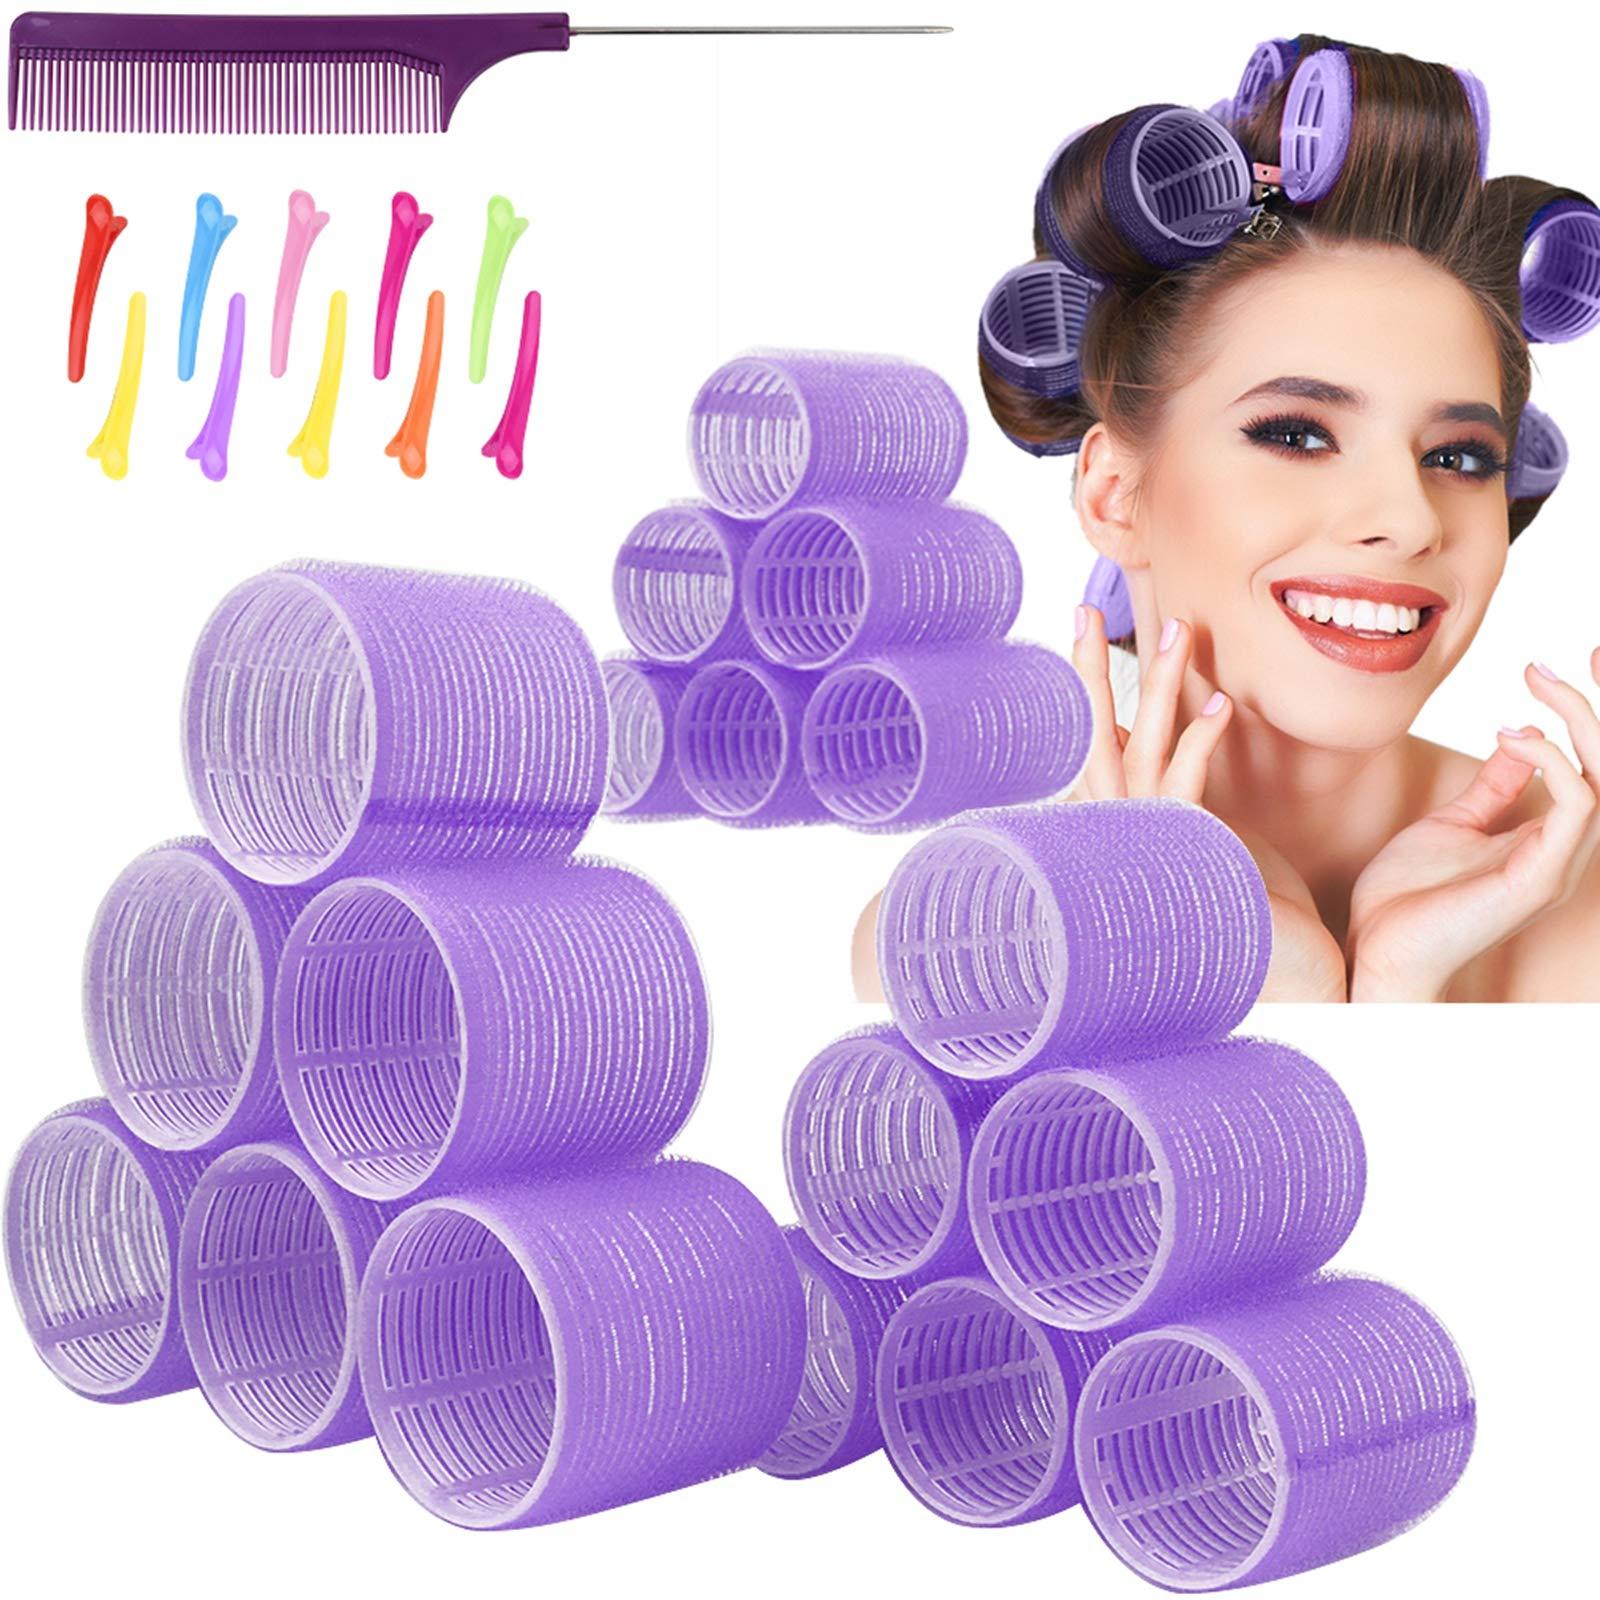 Jumbo Hair Rollers Hair Curlers. 2.5 inch Large Self Grip Hair Curlers for Long Hair, Big Hair Rollers for Long Hair. No heat Curlers Hair Rollers with Clips & Comb.18 Pack